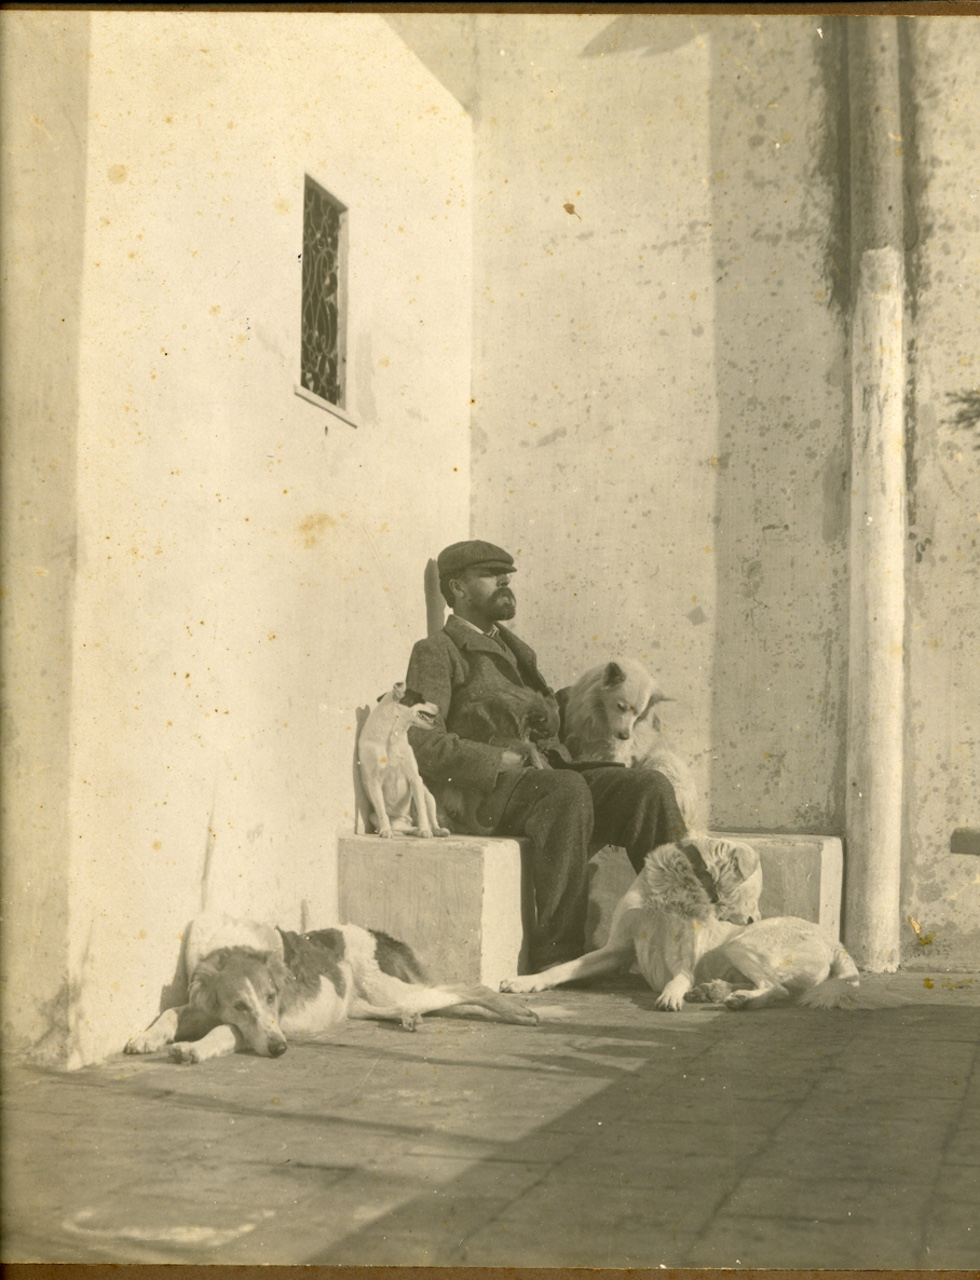 Munthe and his beloved dogs